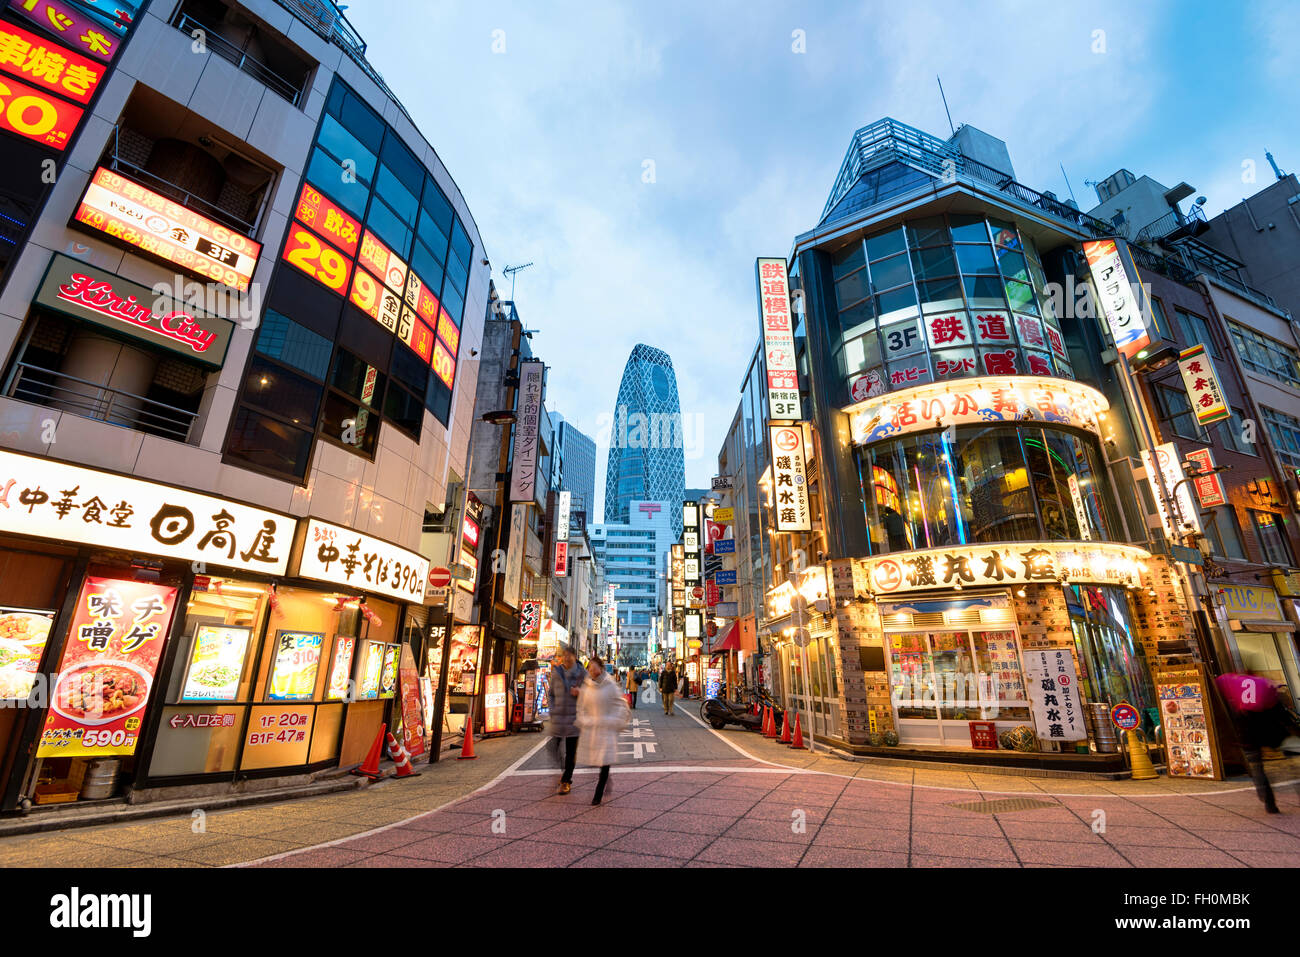 Tokyo; Japan -January 10; 2016: Street view of Nishi Shinjuku Shopping street whith several Japanese Restaurants Stock Photo